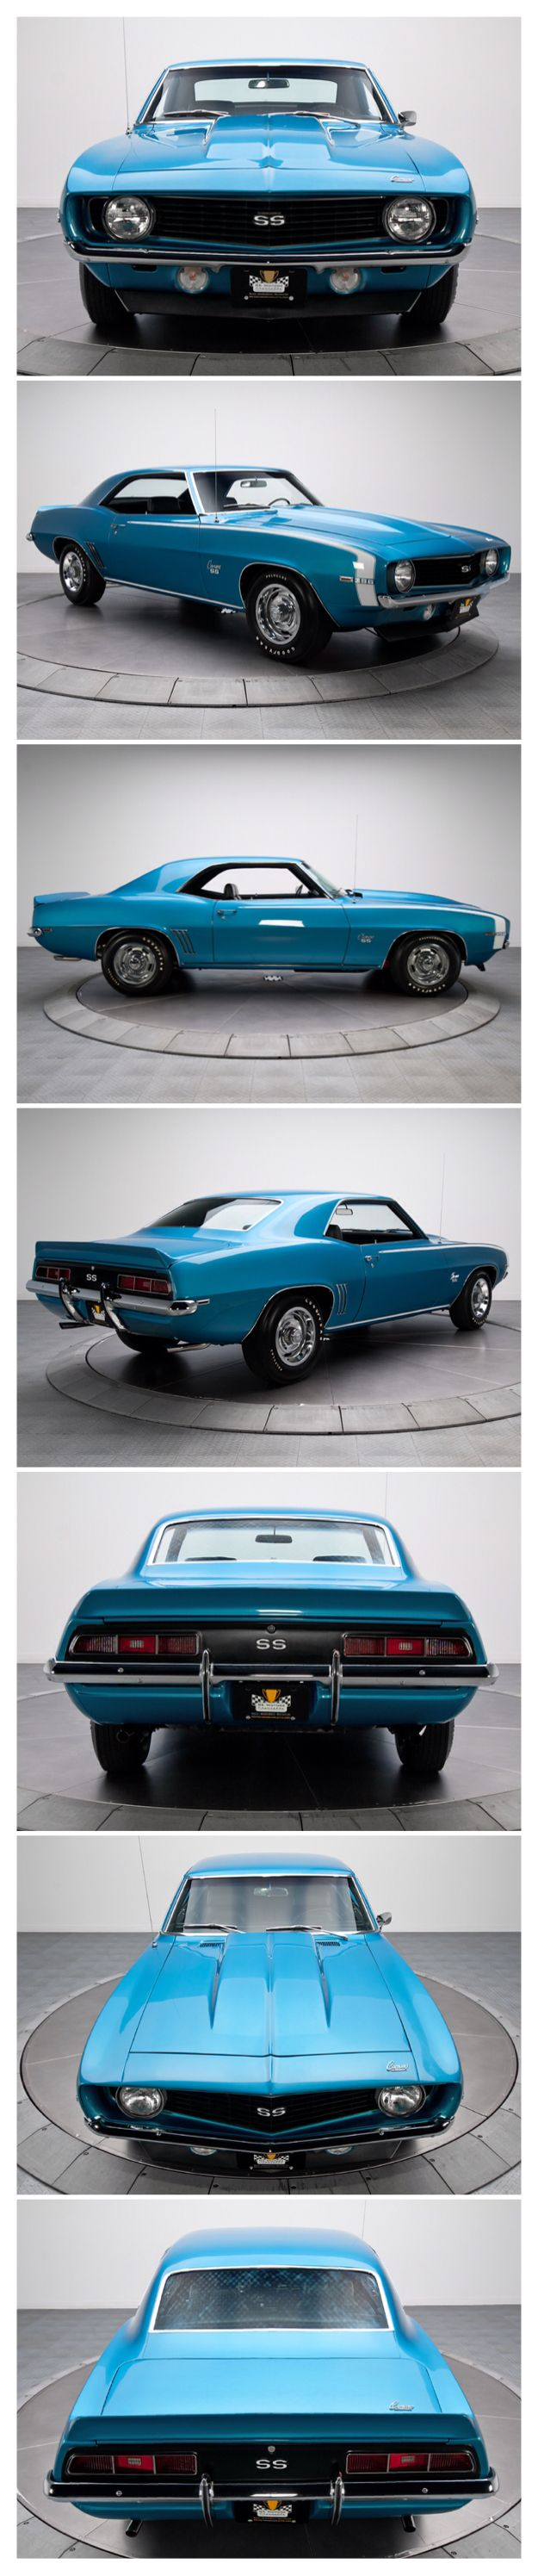 #Chevrolet #Camaro SS 1969  I use to own this car in red ,,,,brought it brand new for $3,000